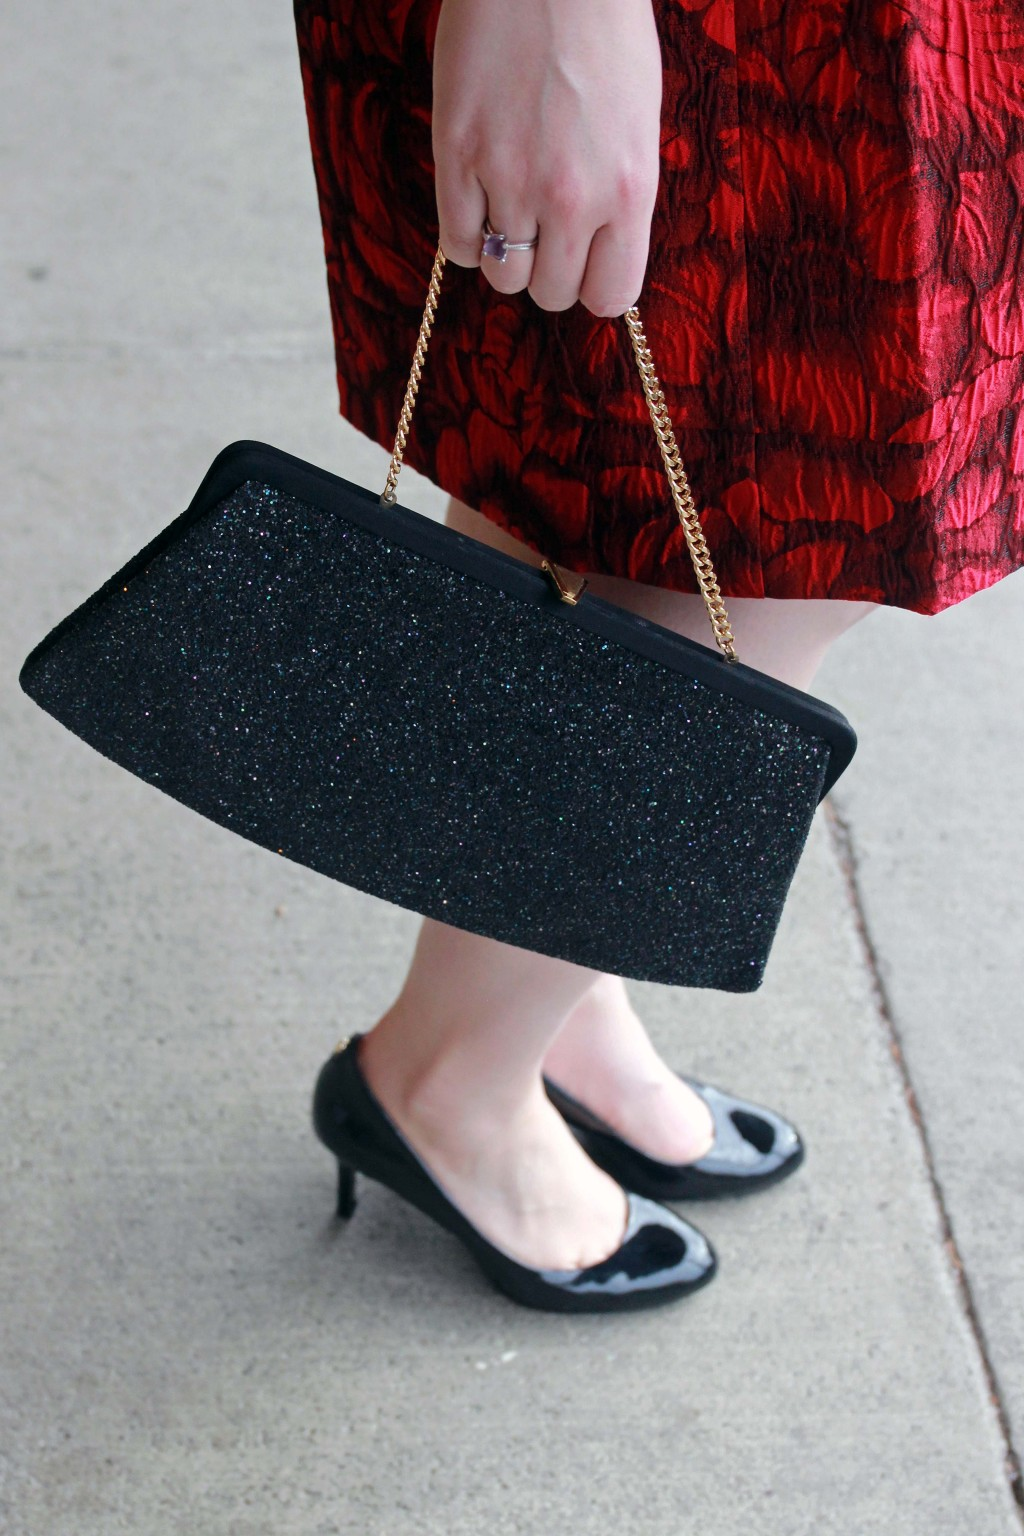 Vintage clutch and black heels accessories